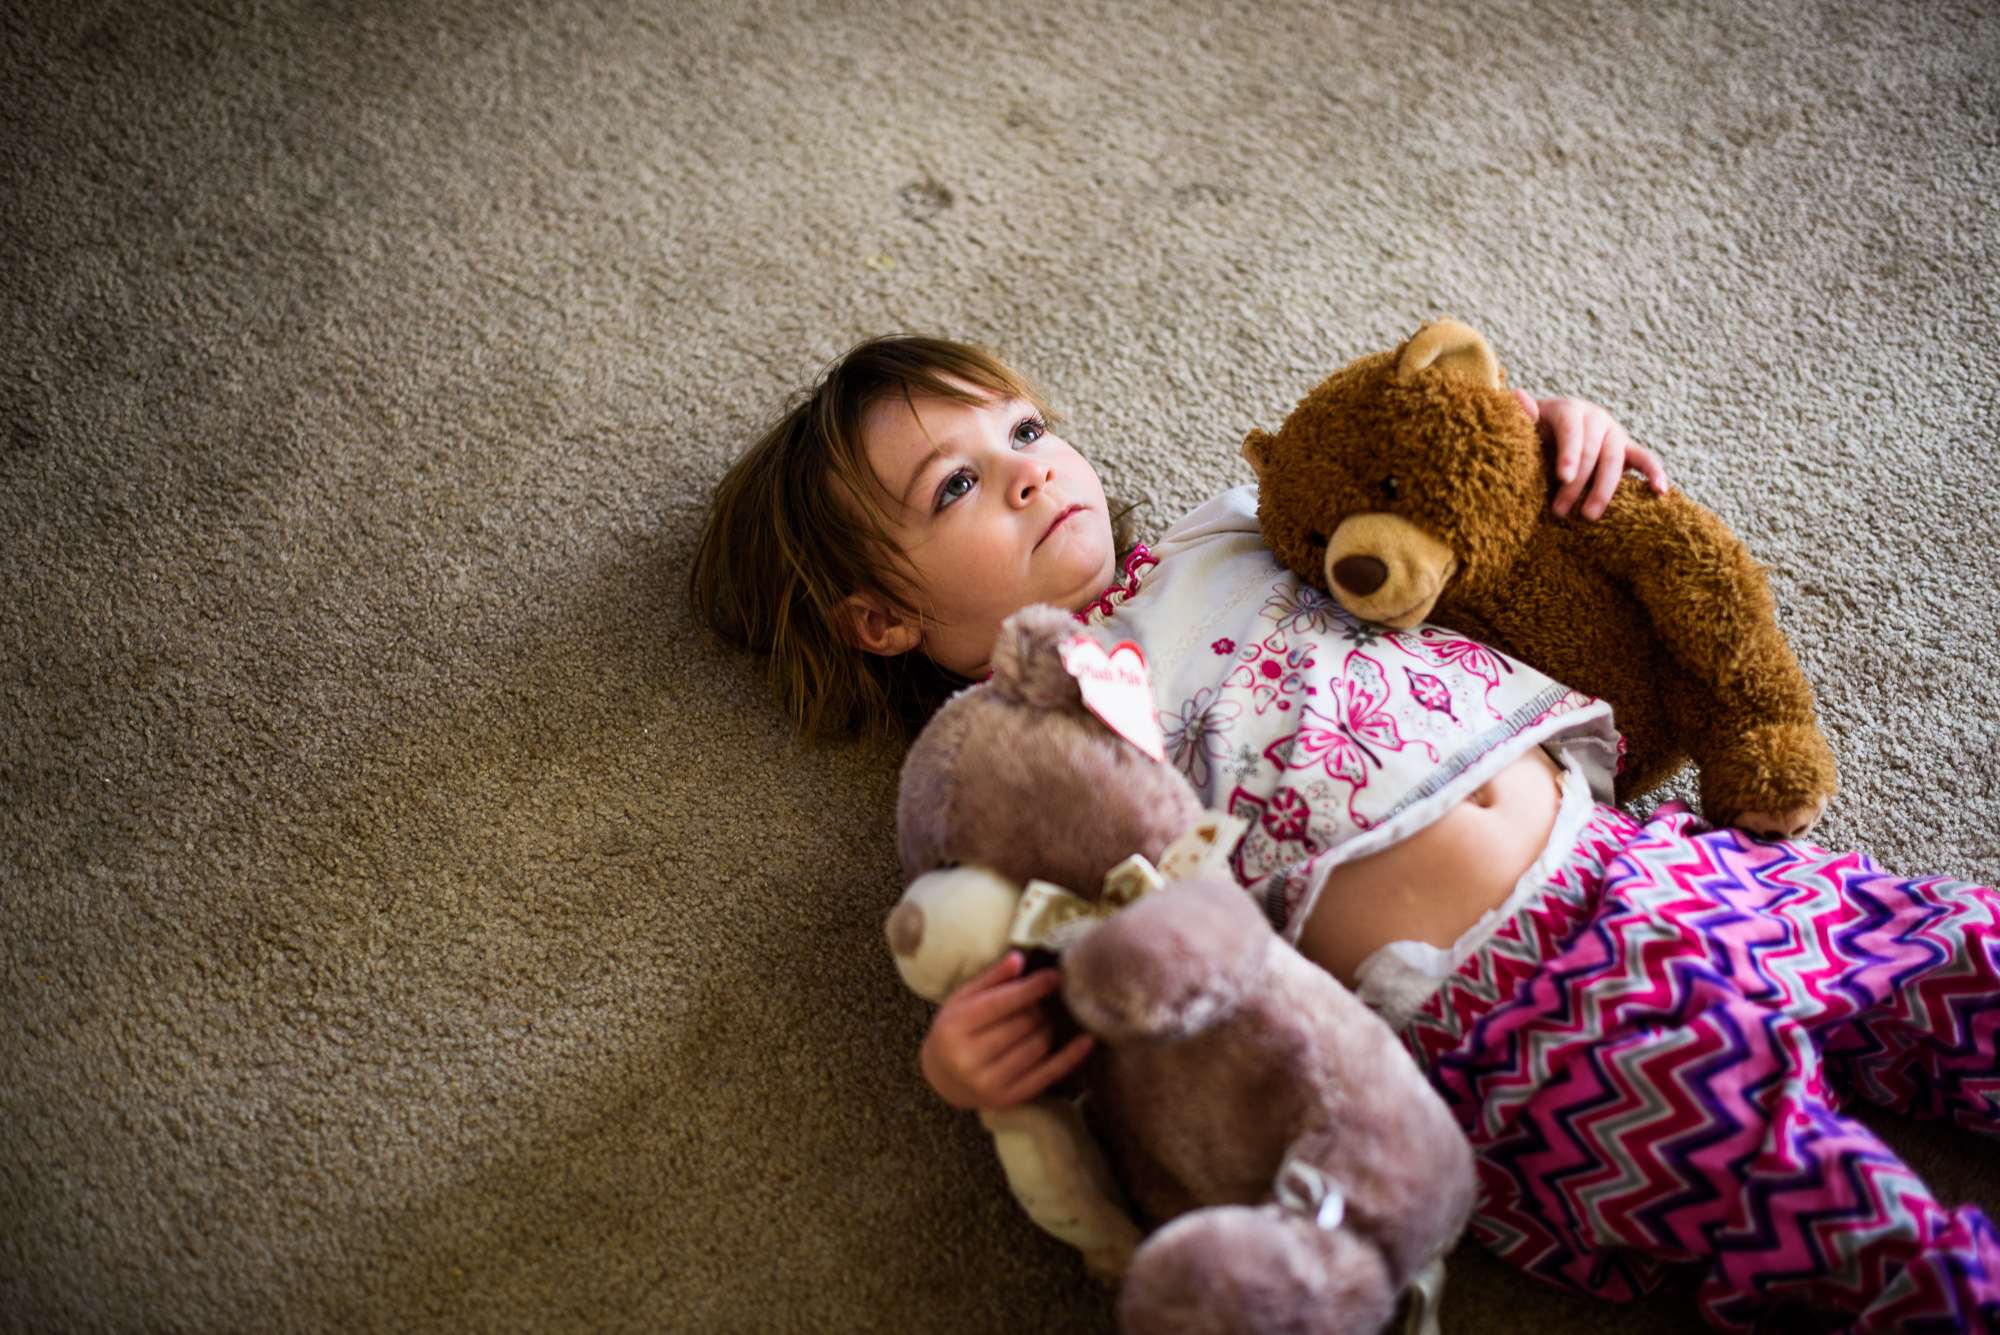 Leticia, age 2, lies on her back and holds two teddy bears.